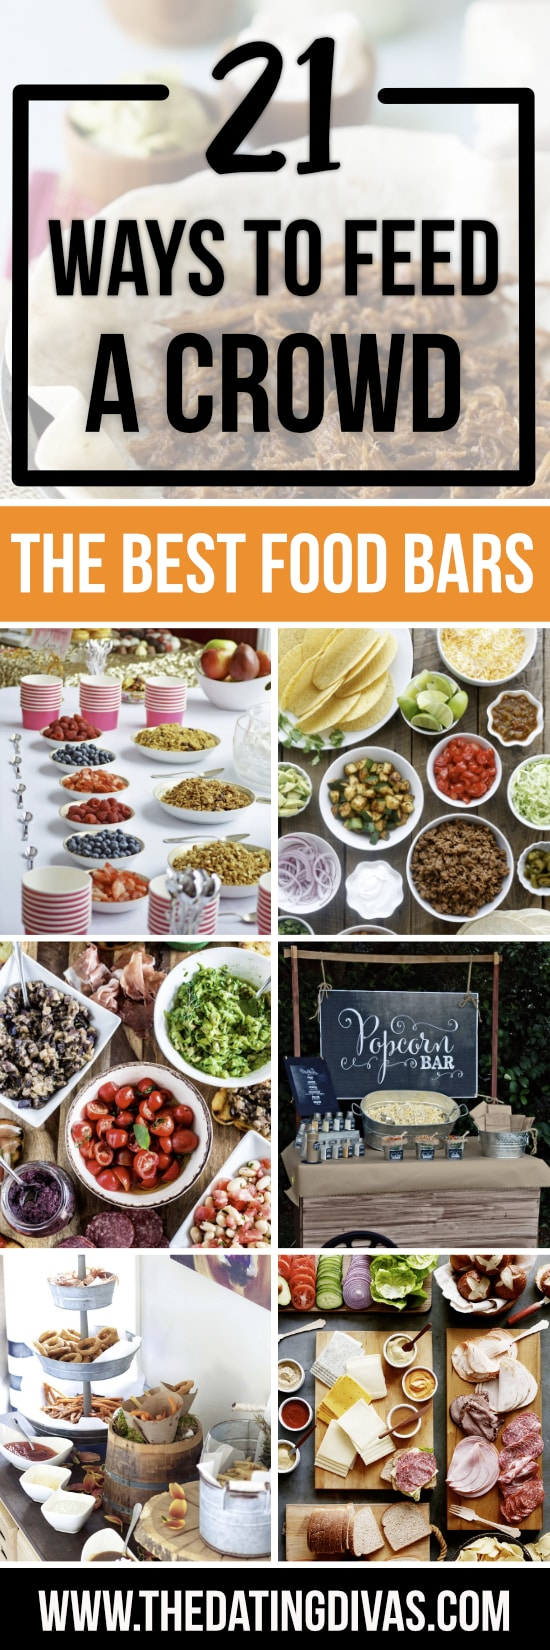 The Best Food Bars